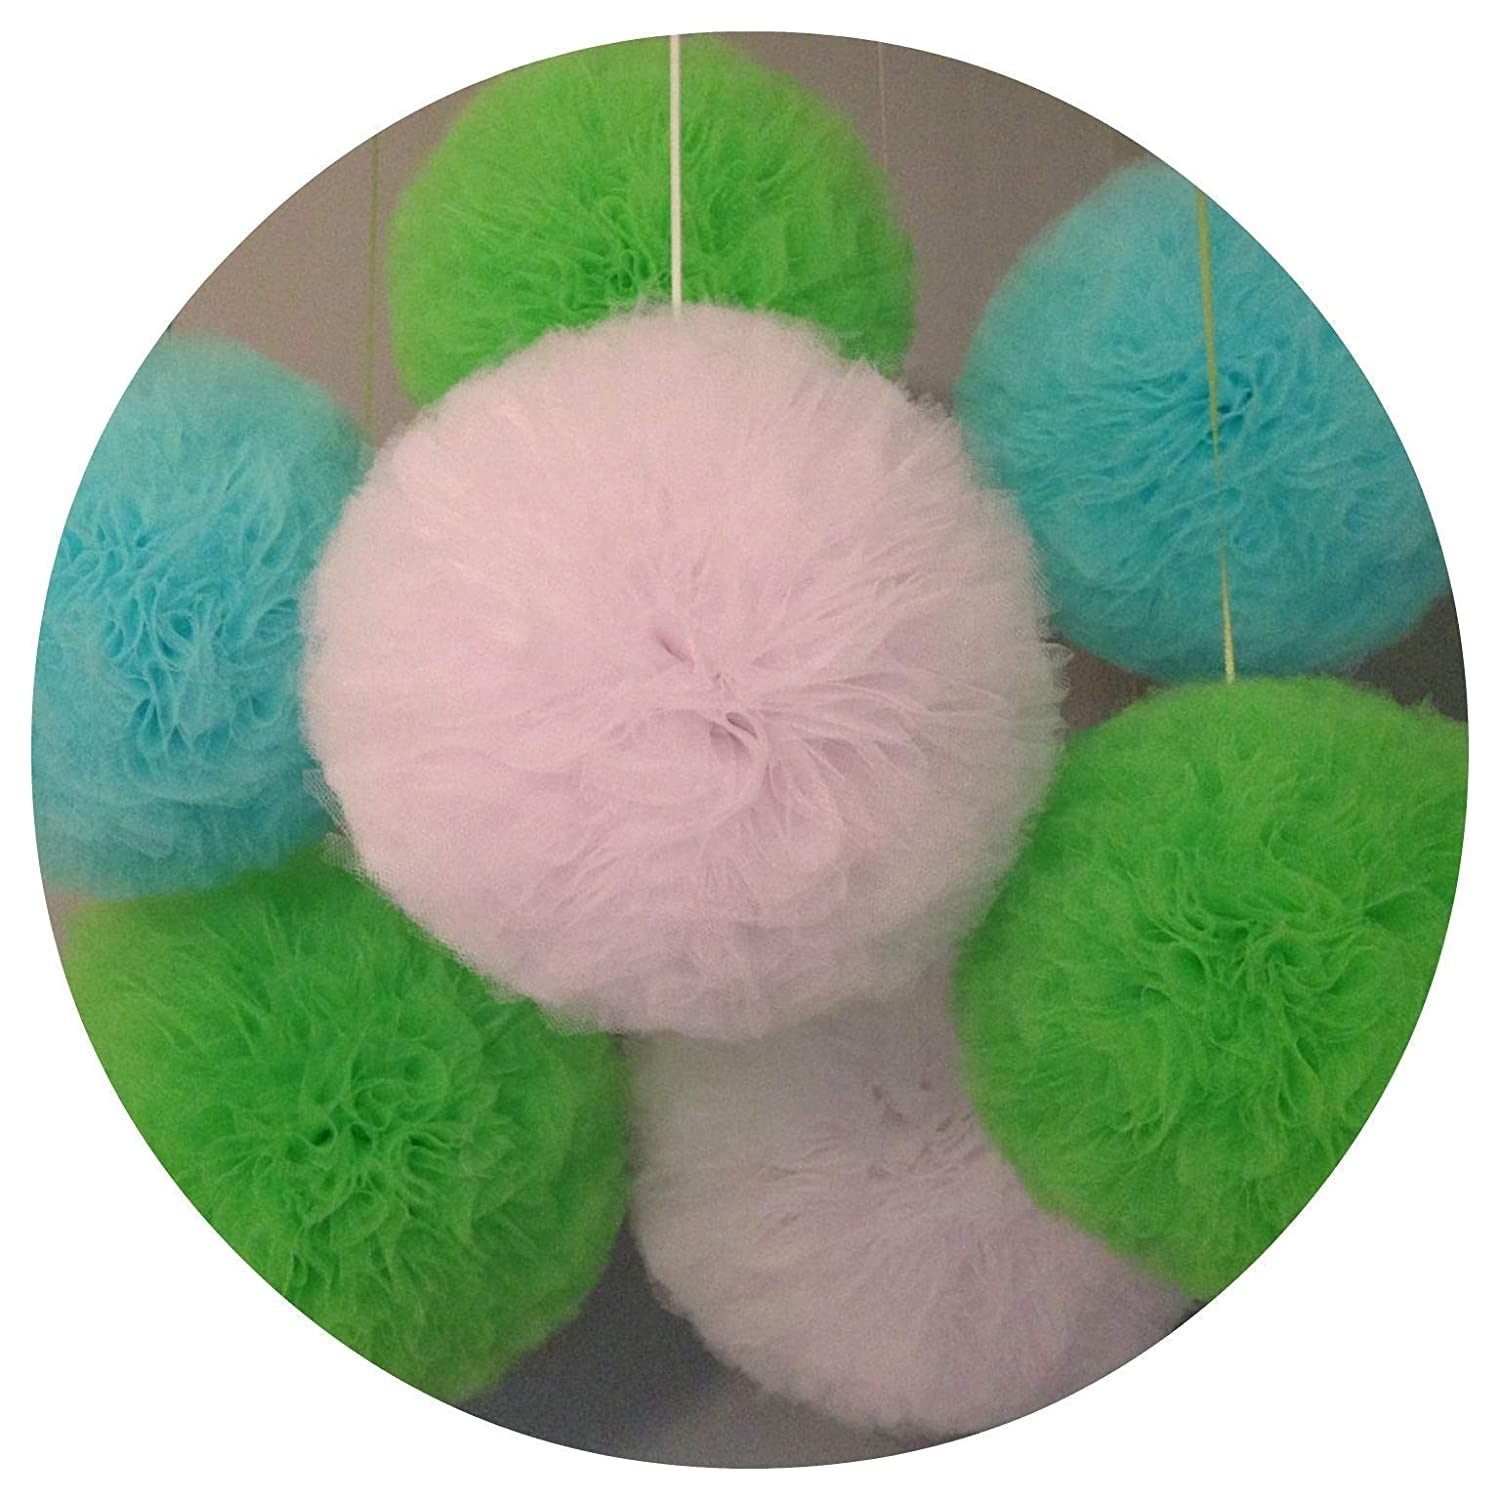 XSMALL 6 inch Tulle Pompom Flowers Fluffy Tulle Pom Poms Hanging Ball for Baby Shower Decorations Birthday Party Celebration Wedding Decor